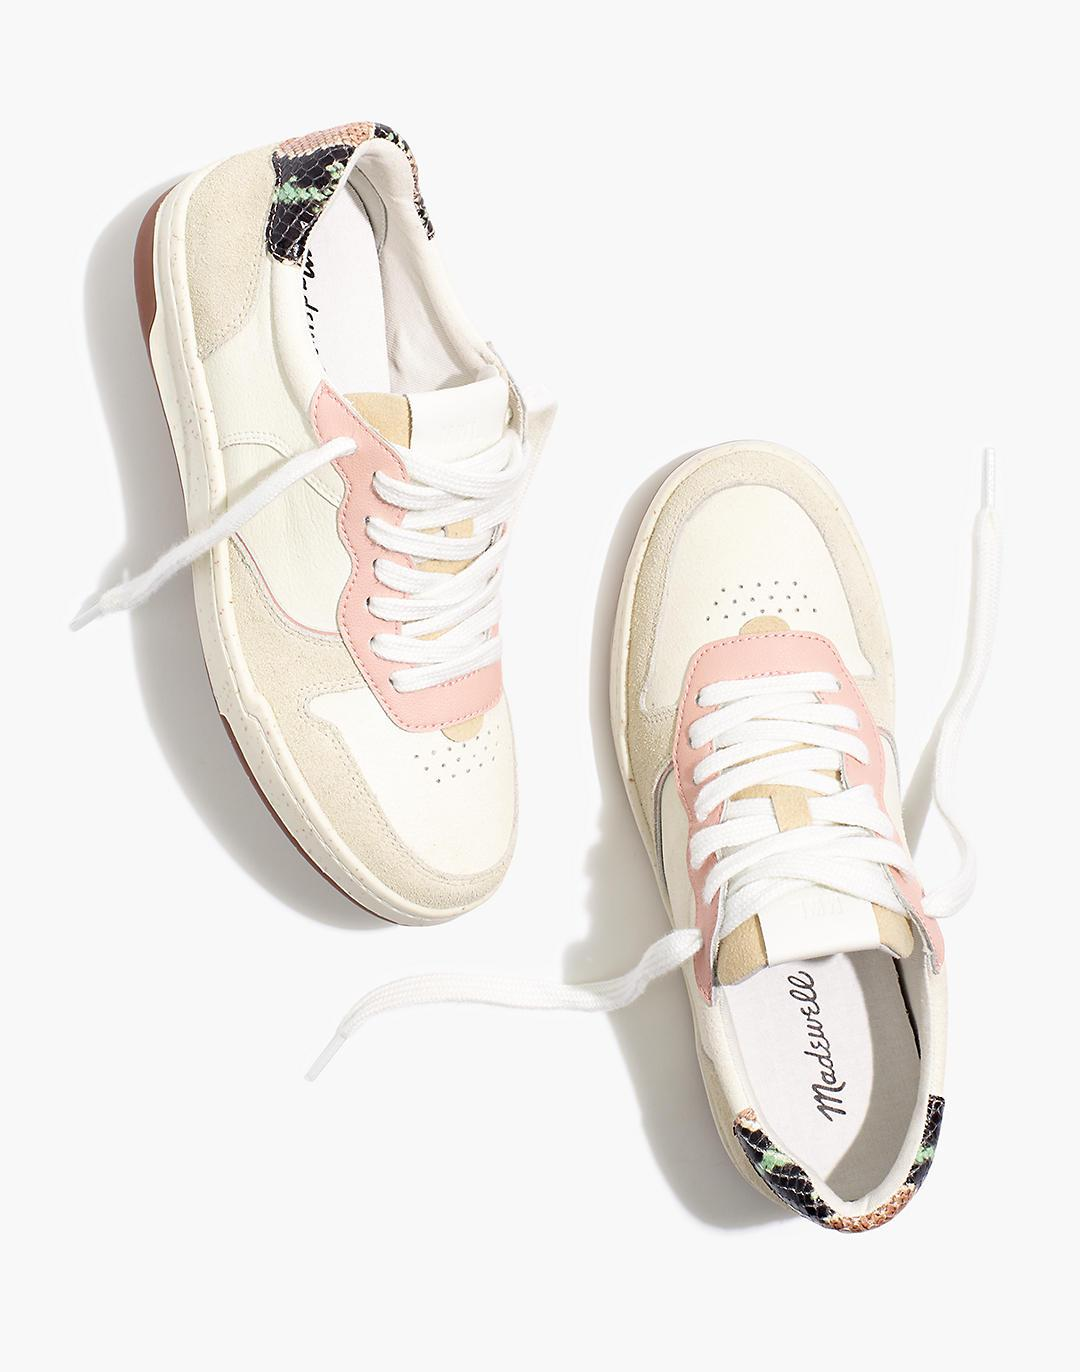 Court Sneakers in Colorblock Suede and Snakeskin Embossed Leather